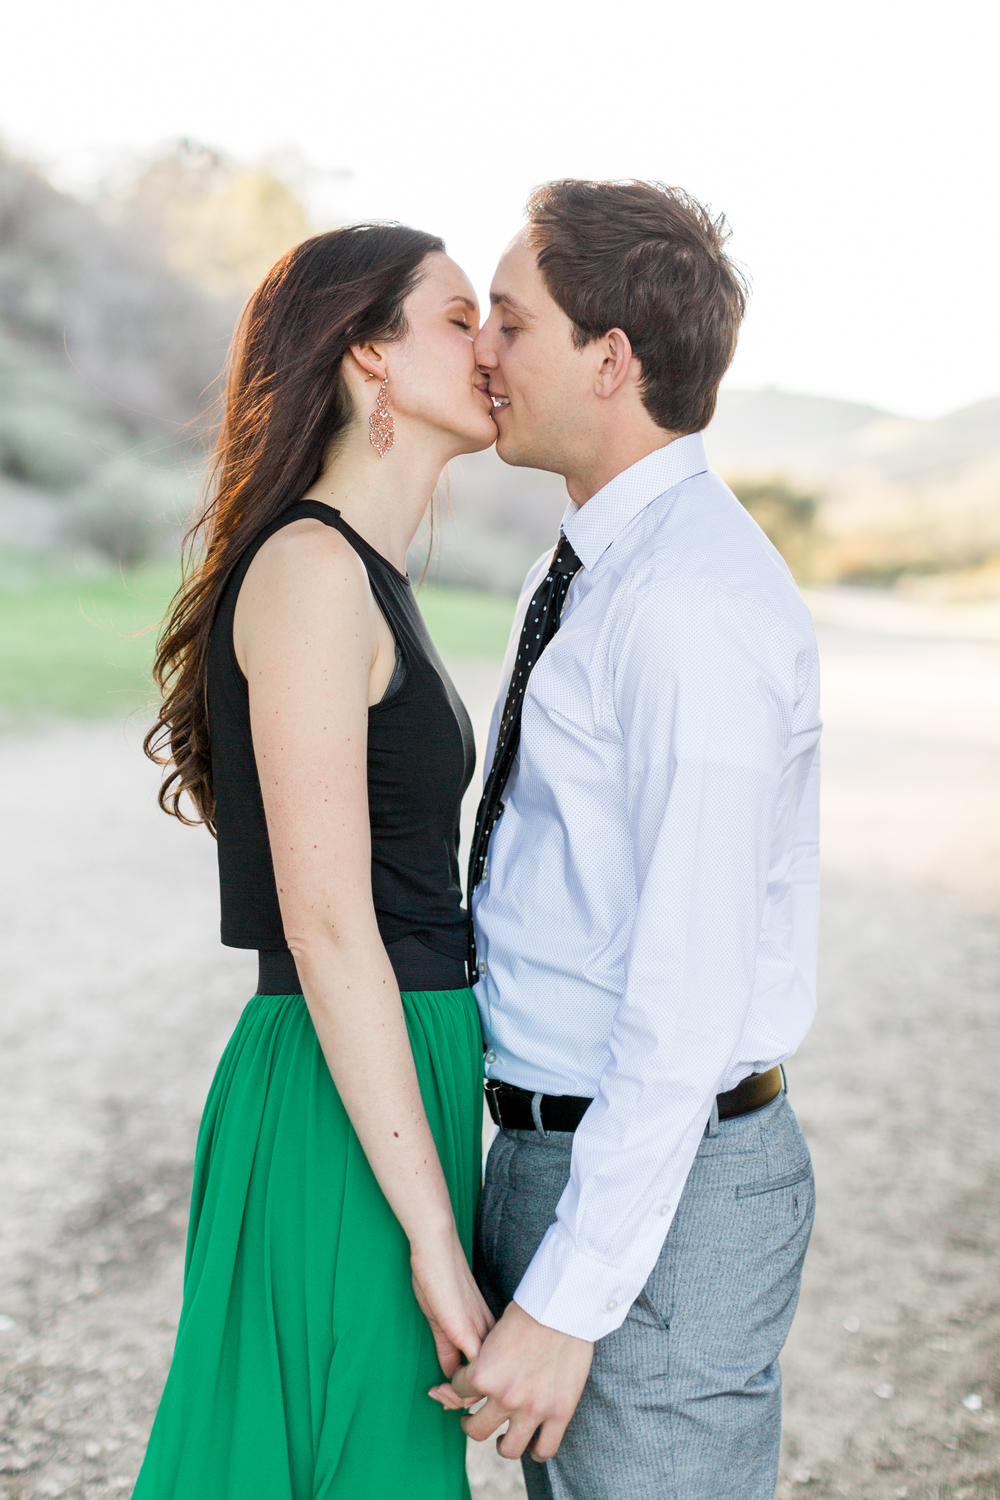 CourtneyPaigePhotography_Abler_Engagement-5.jpg